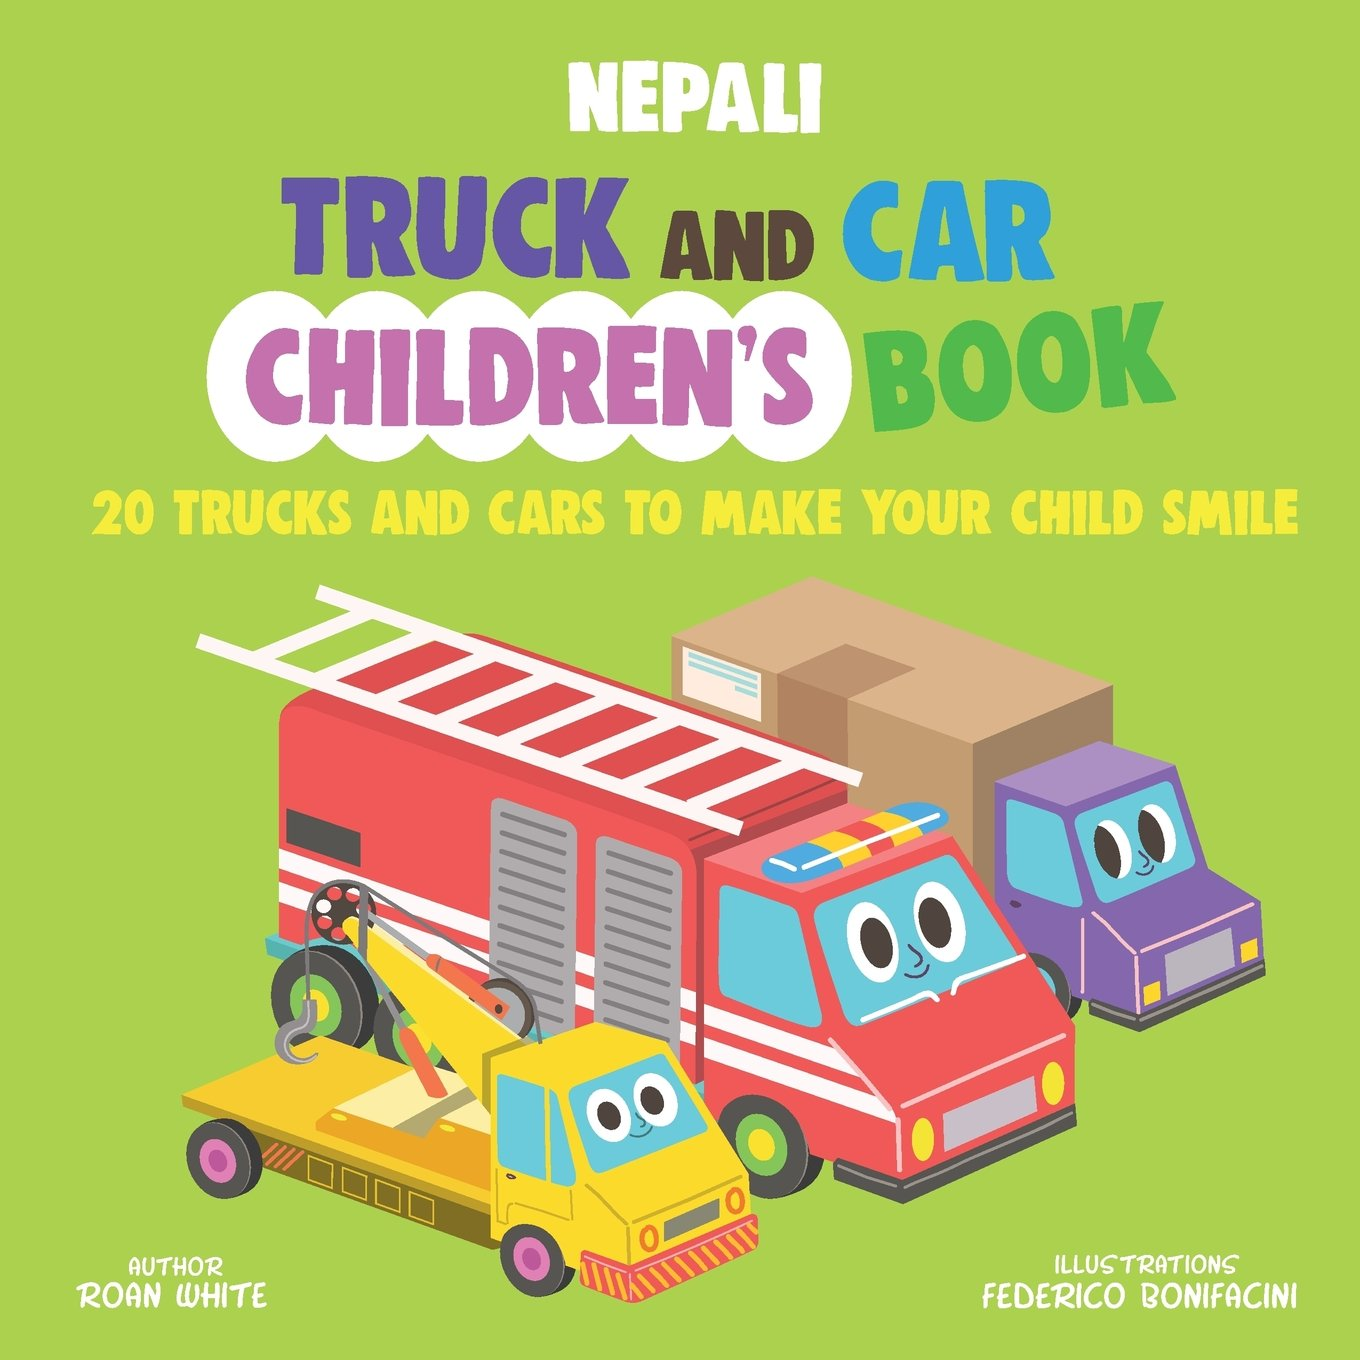 Download Nepali Truck and Car Children's Book: 20 Trucks and Cars to Make Your Child Smile pdf